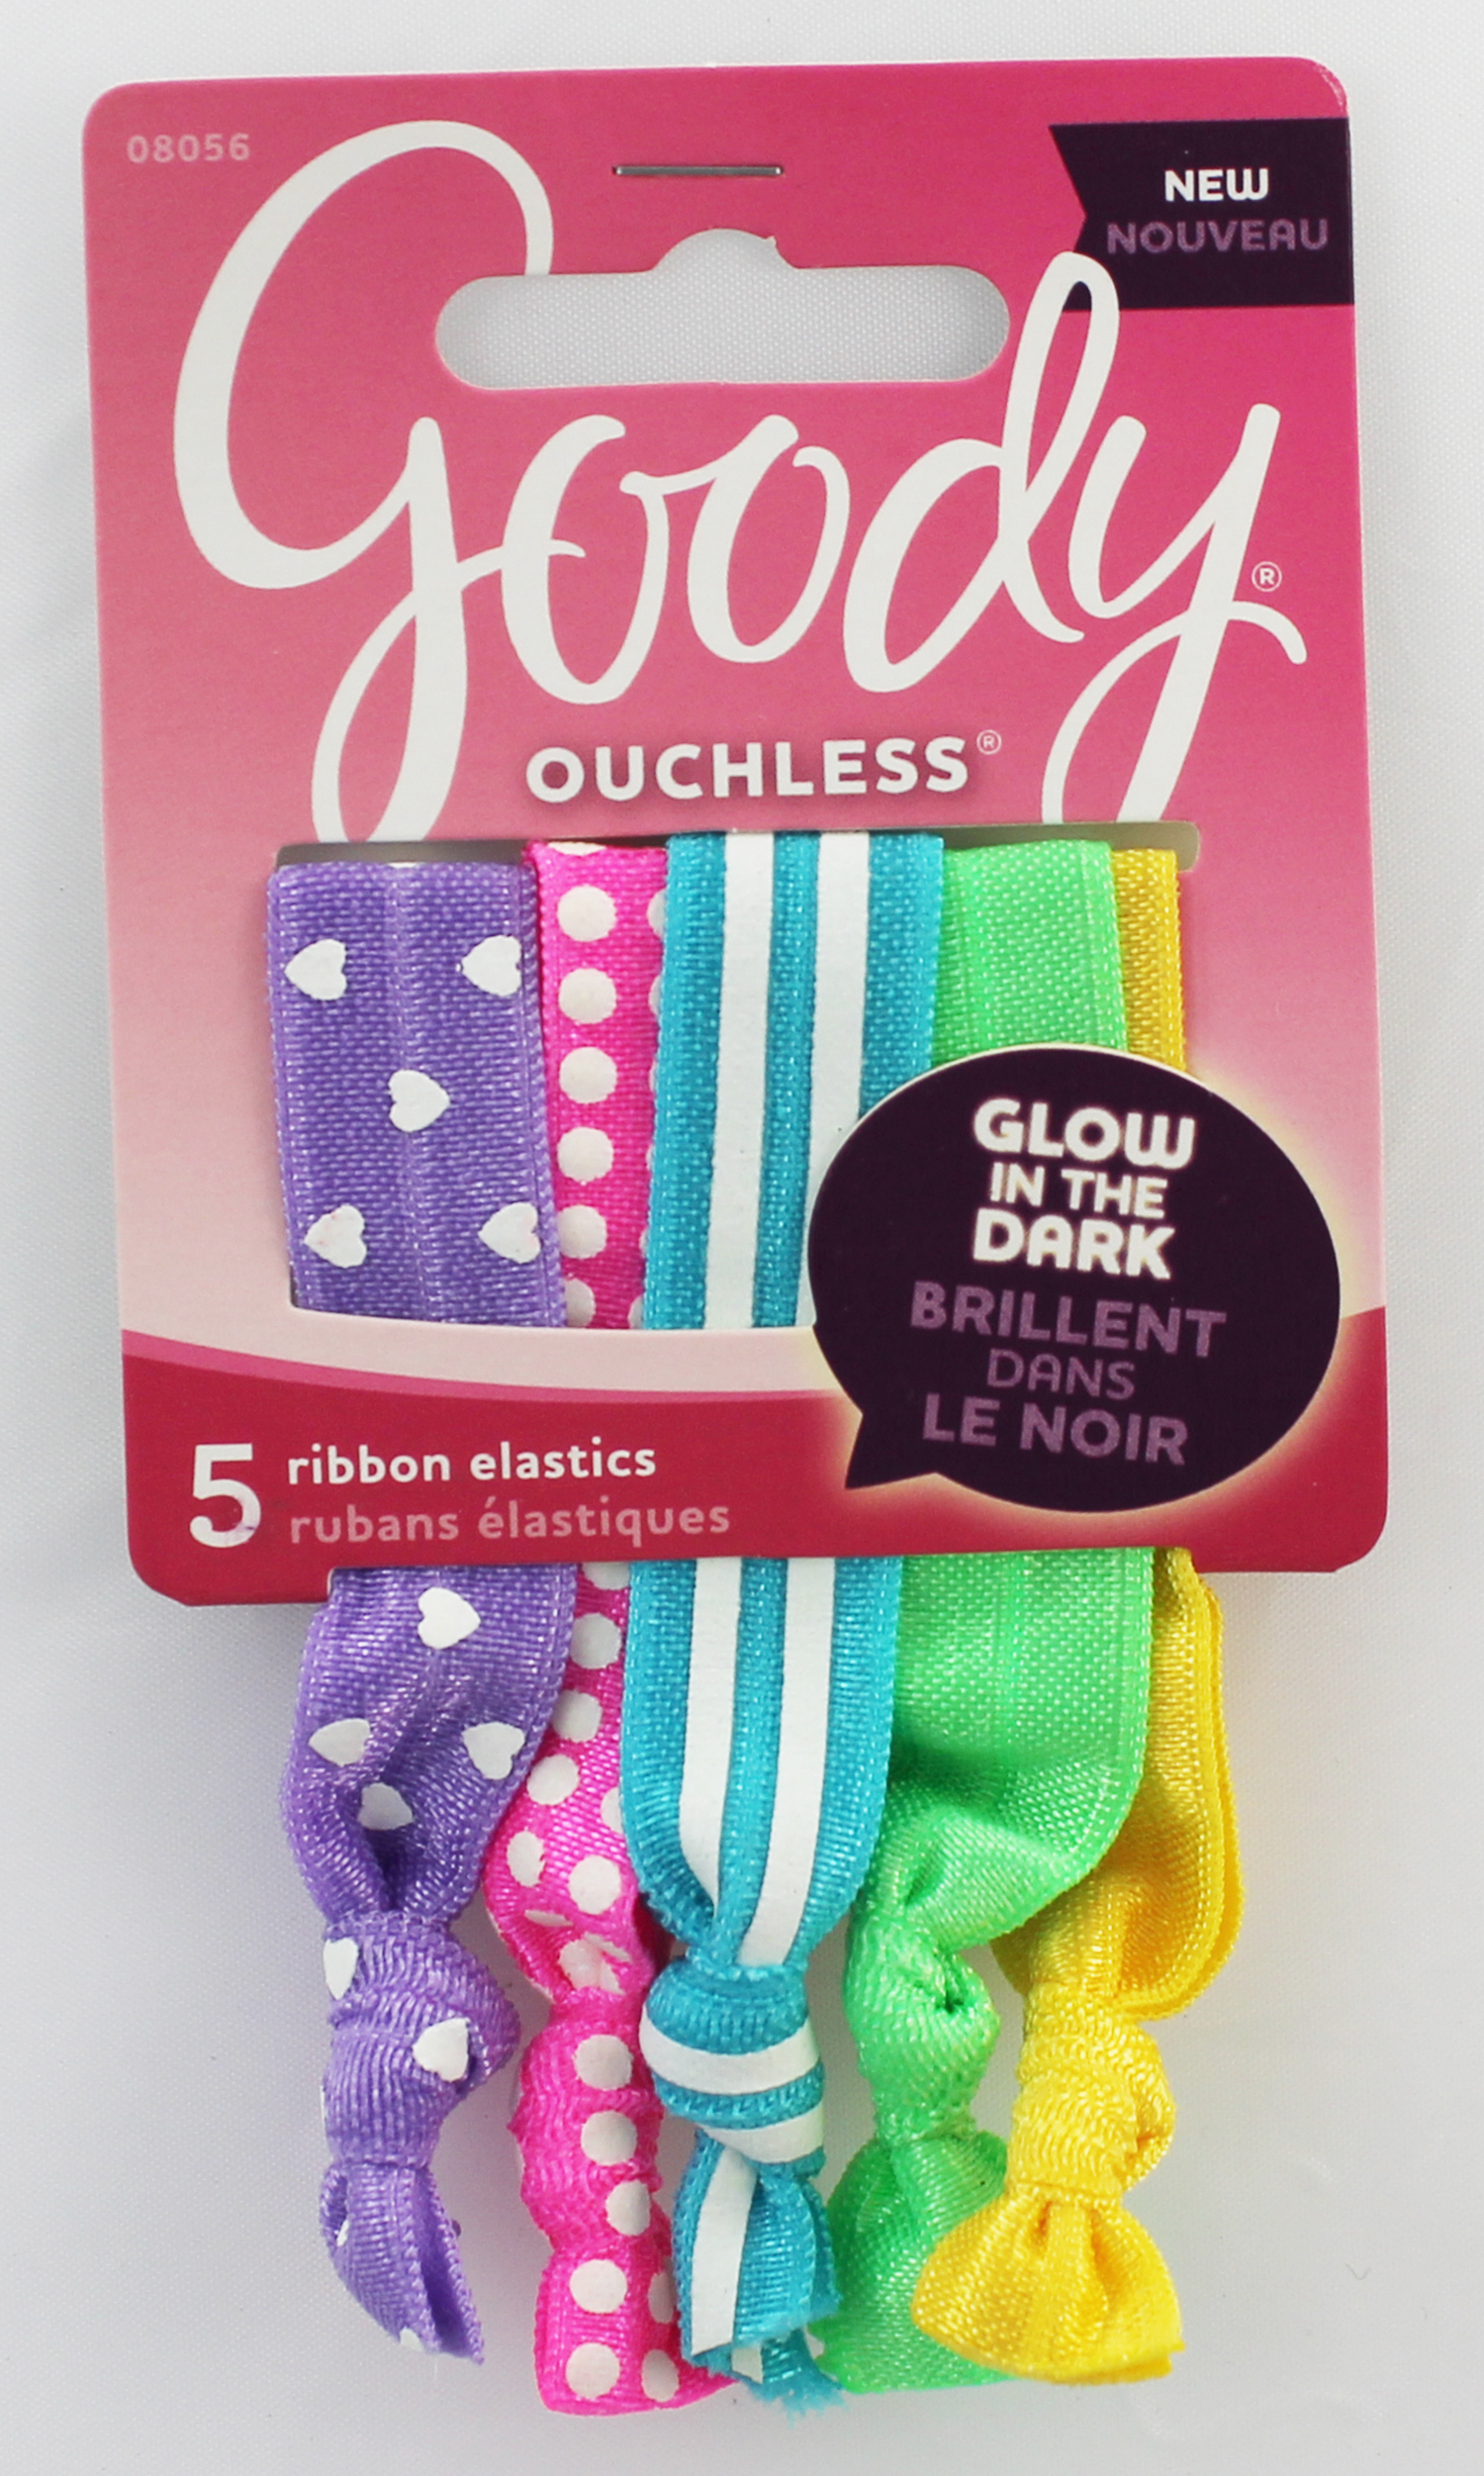 Goody Girls Glow in the Dark Ribbon Elastics 1946120 041457080566